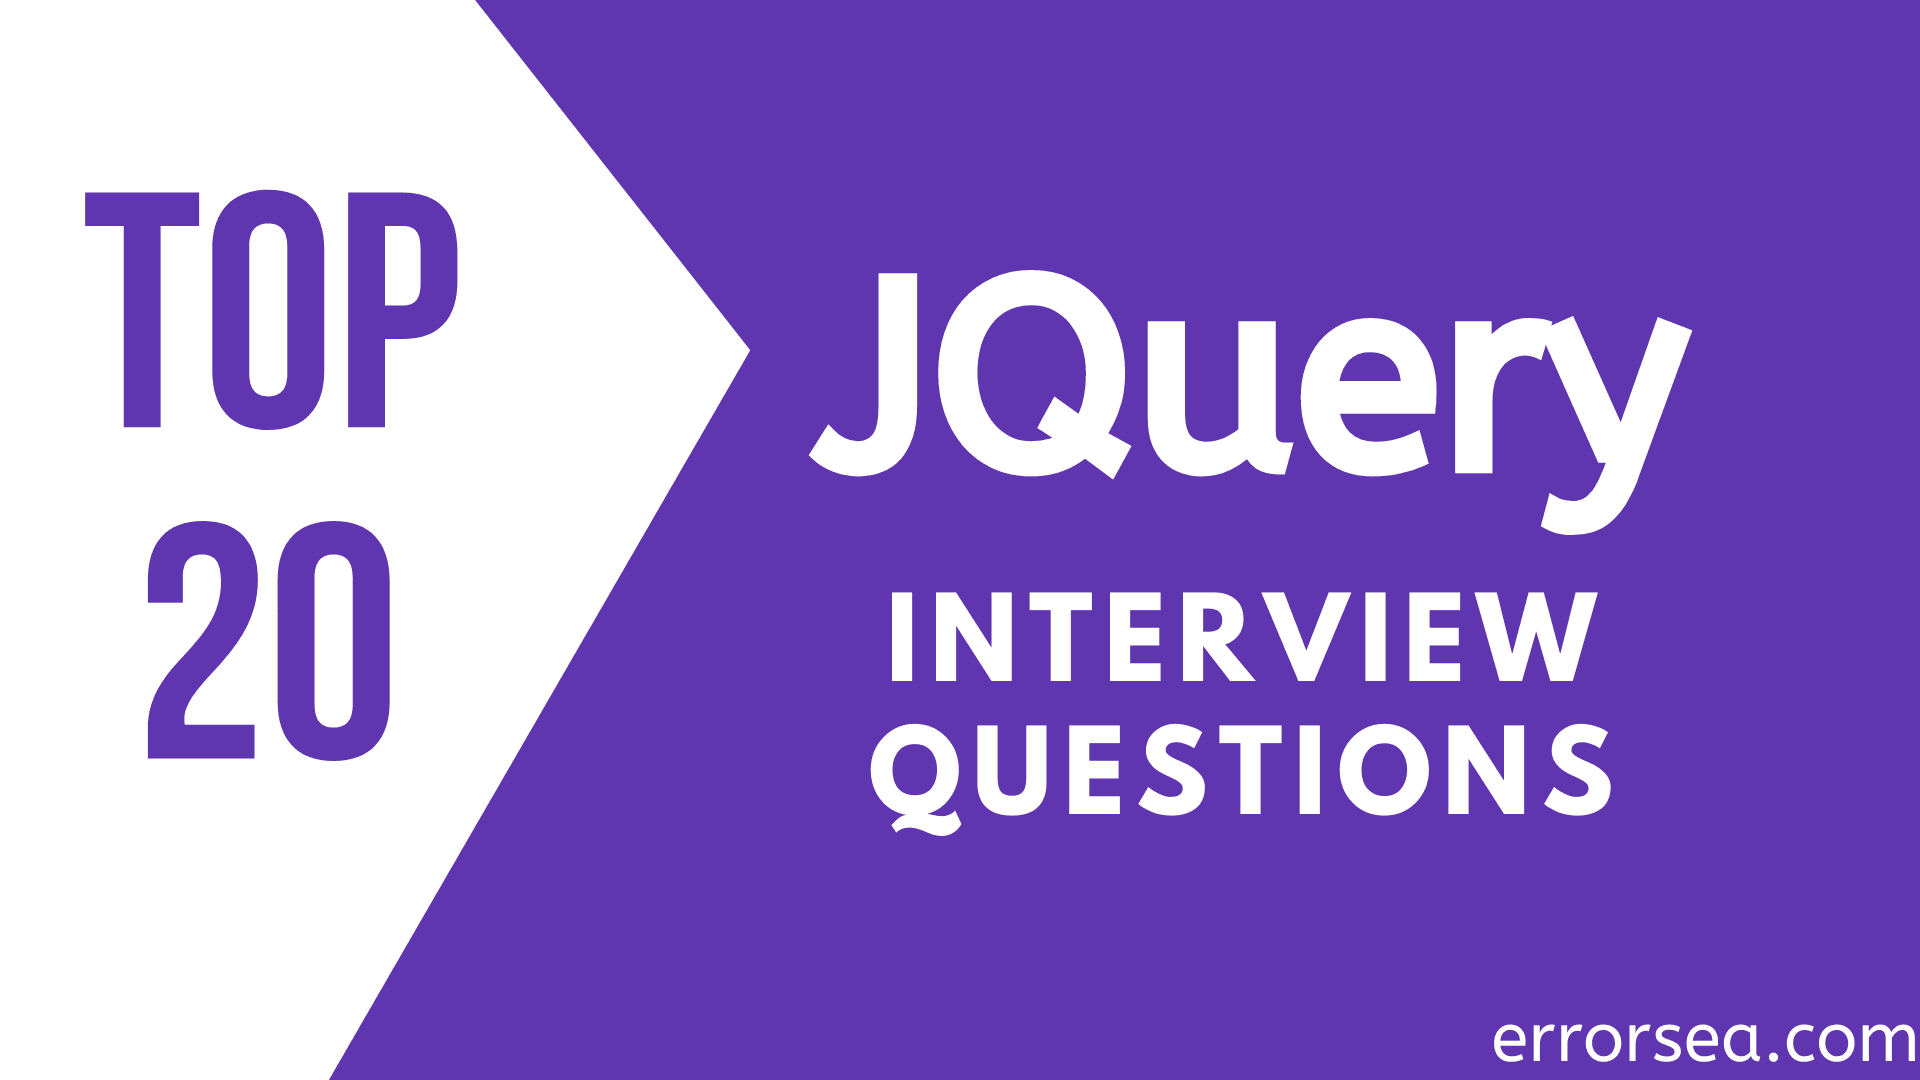 Top 25 JQuery Interview Questions